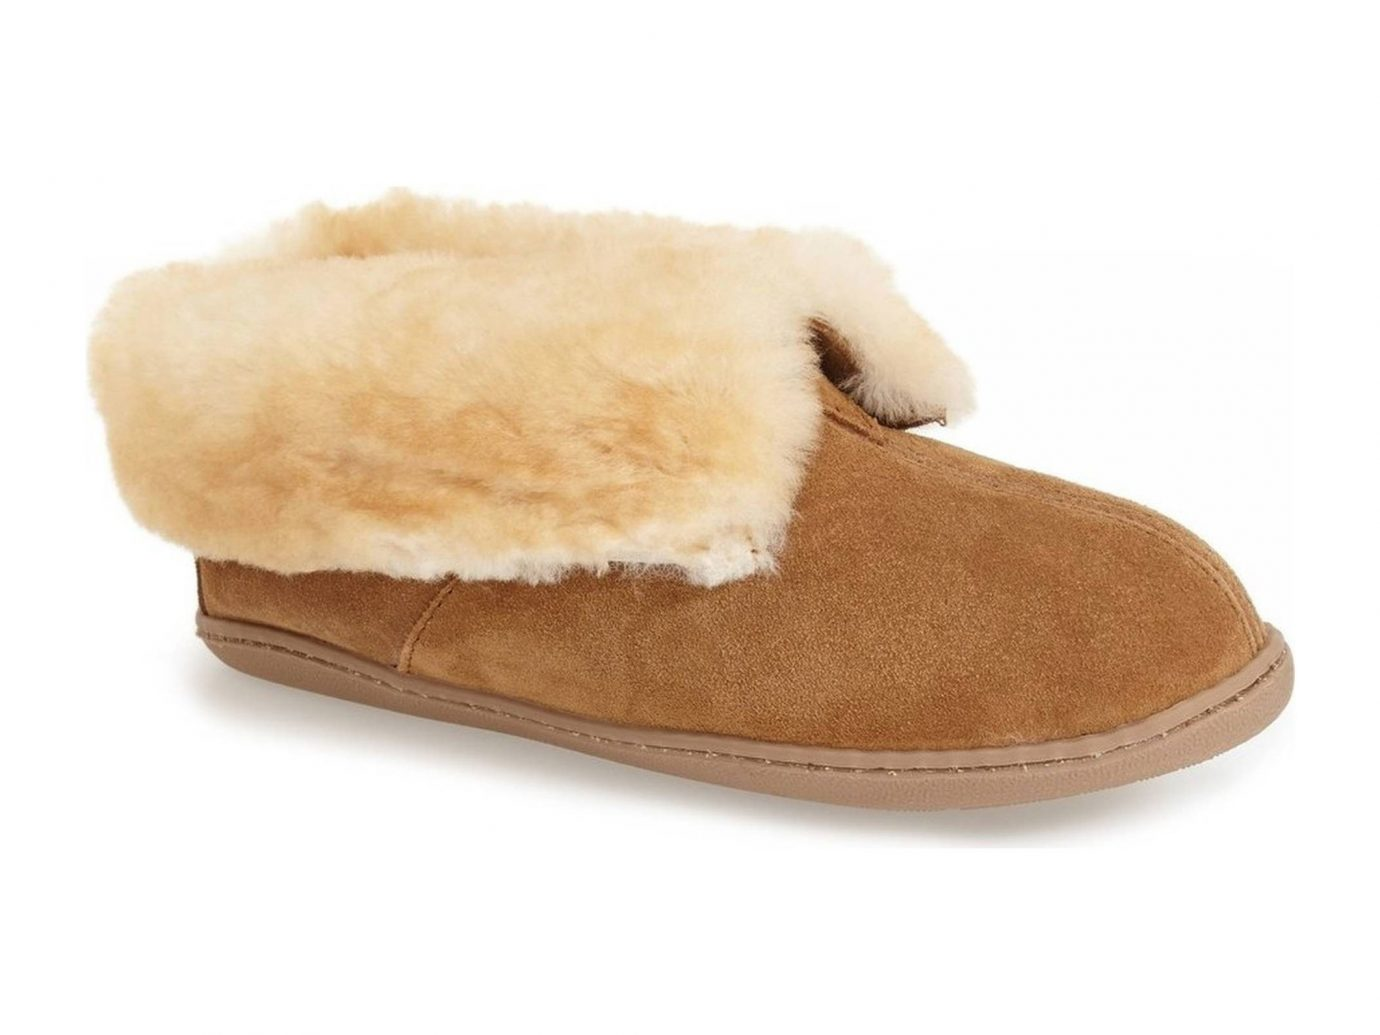 Style + Design Travel Shop footwear slipper shoe indoor beige product suede fur outdoor shoe tan